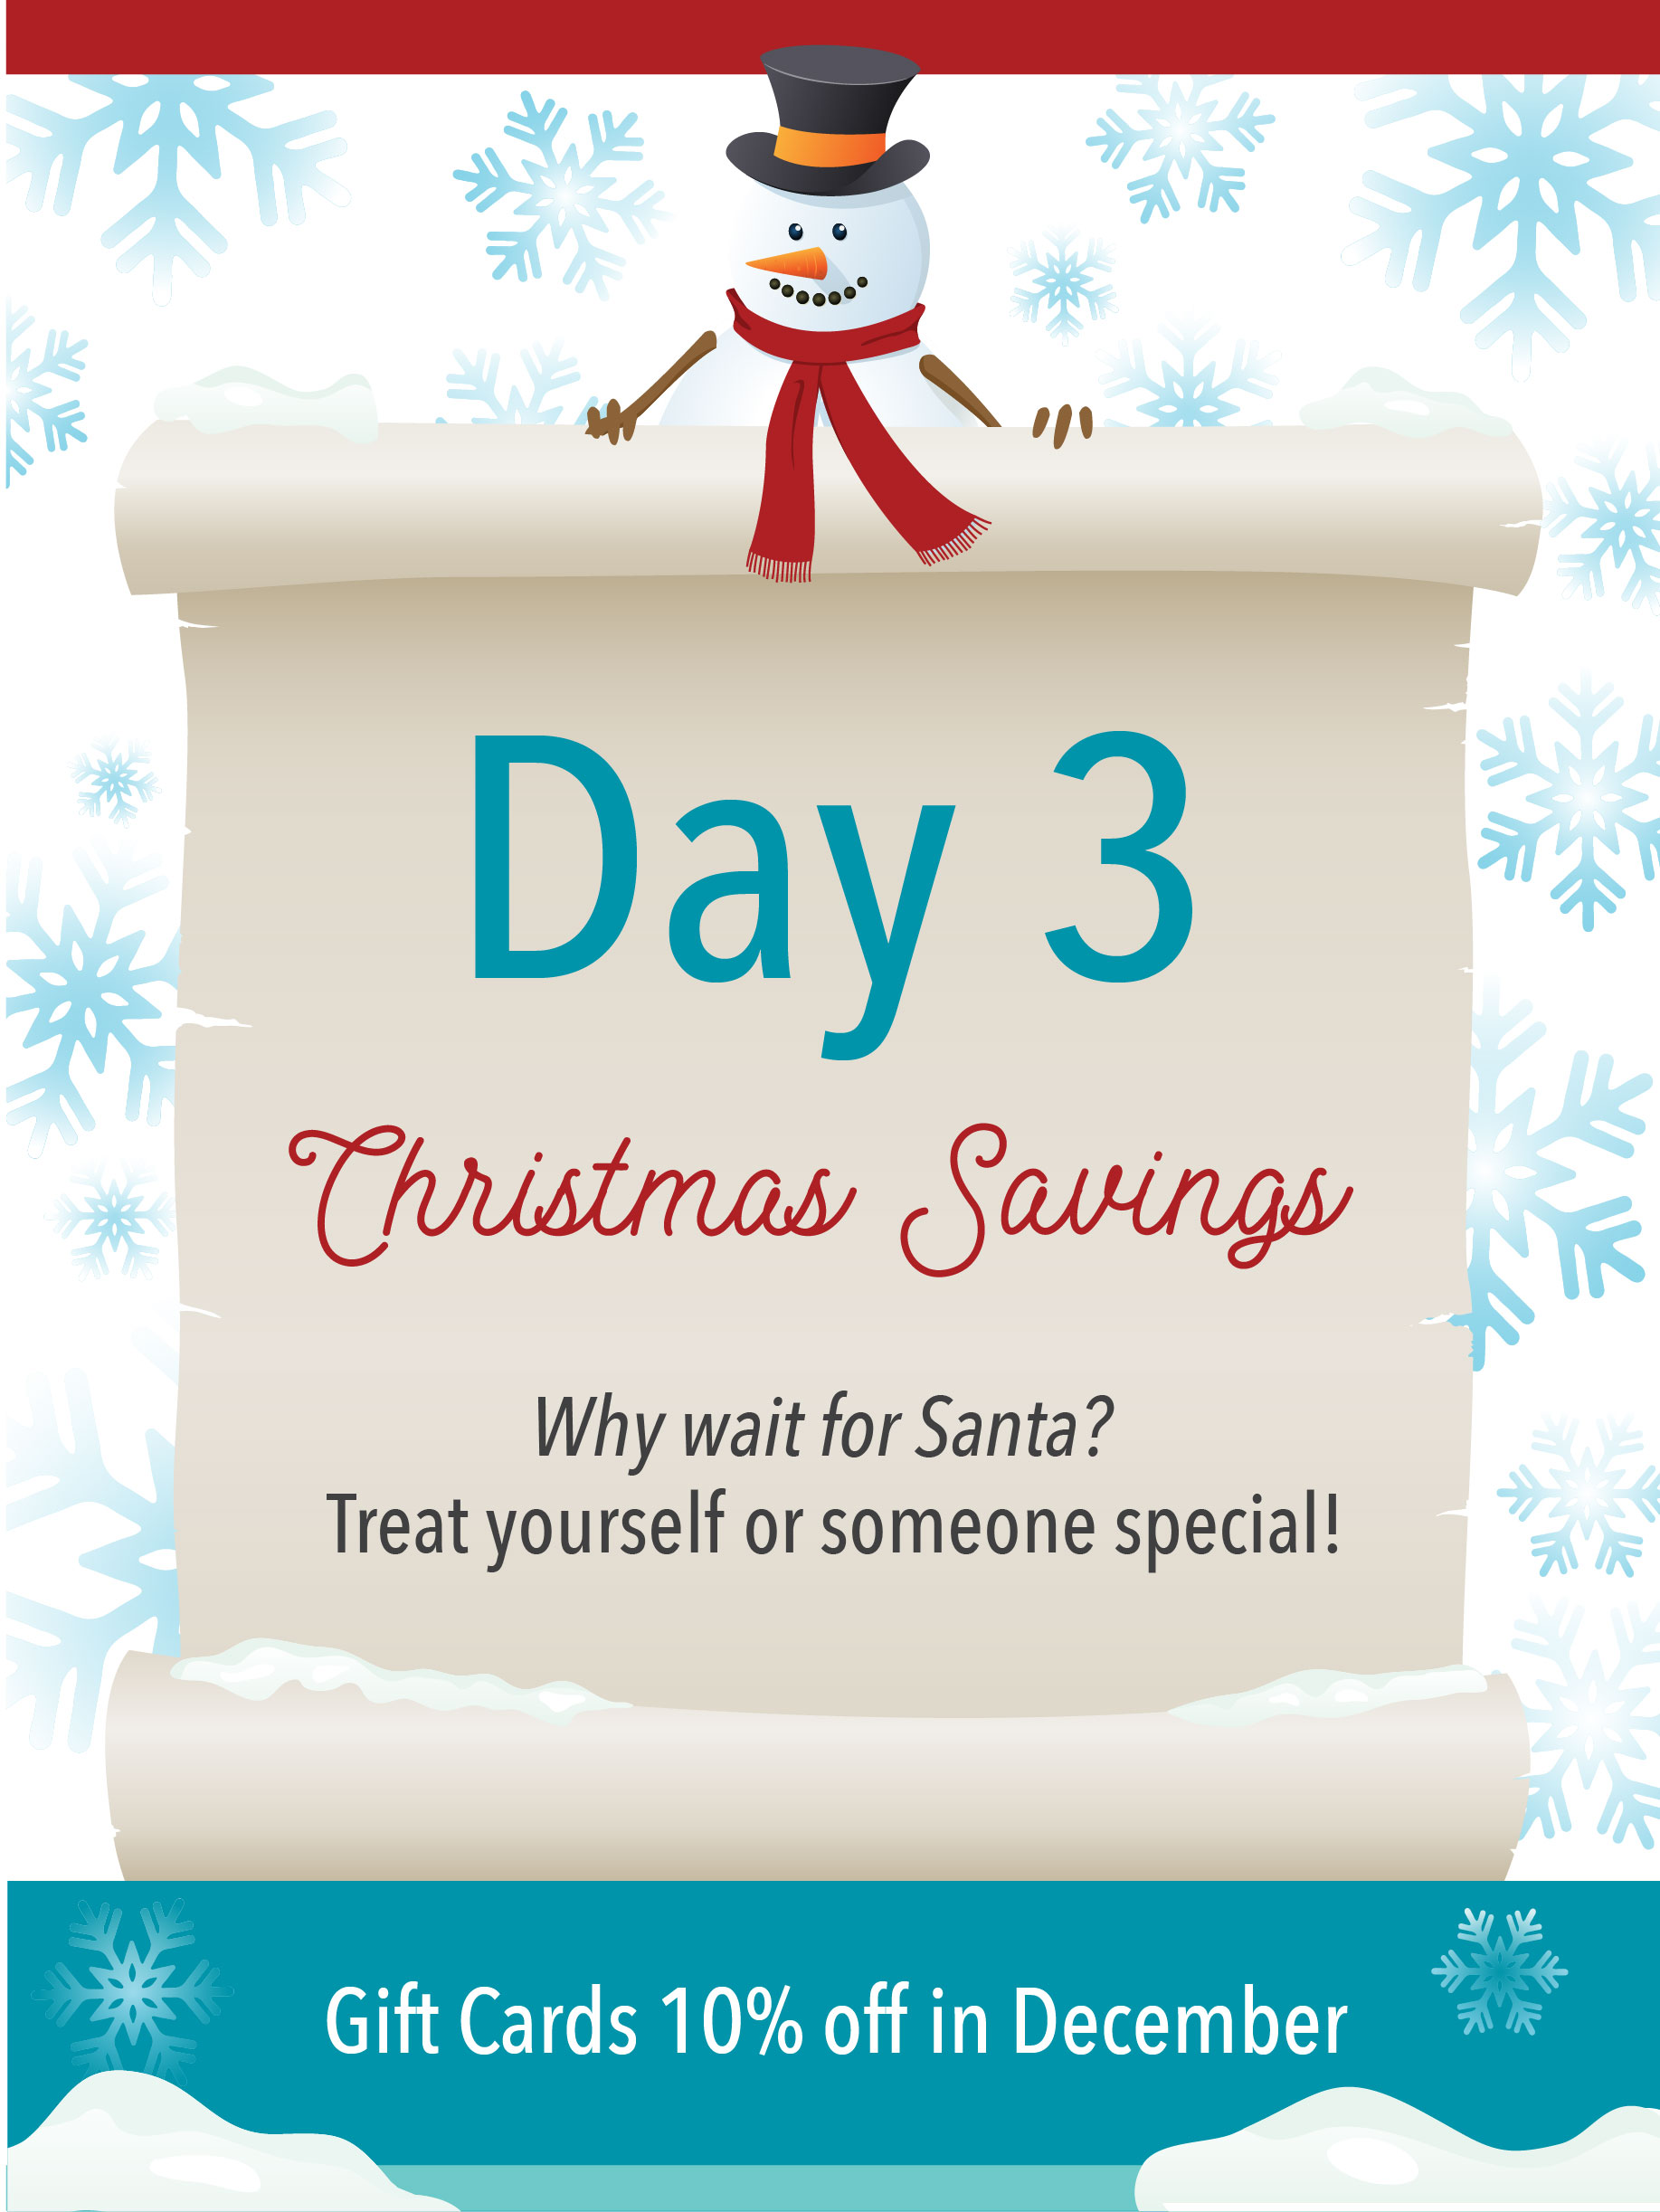 12 Days of Christmas Savings_2017-03.jpg